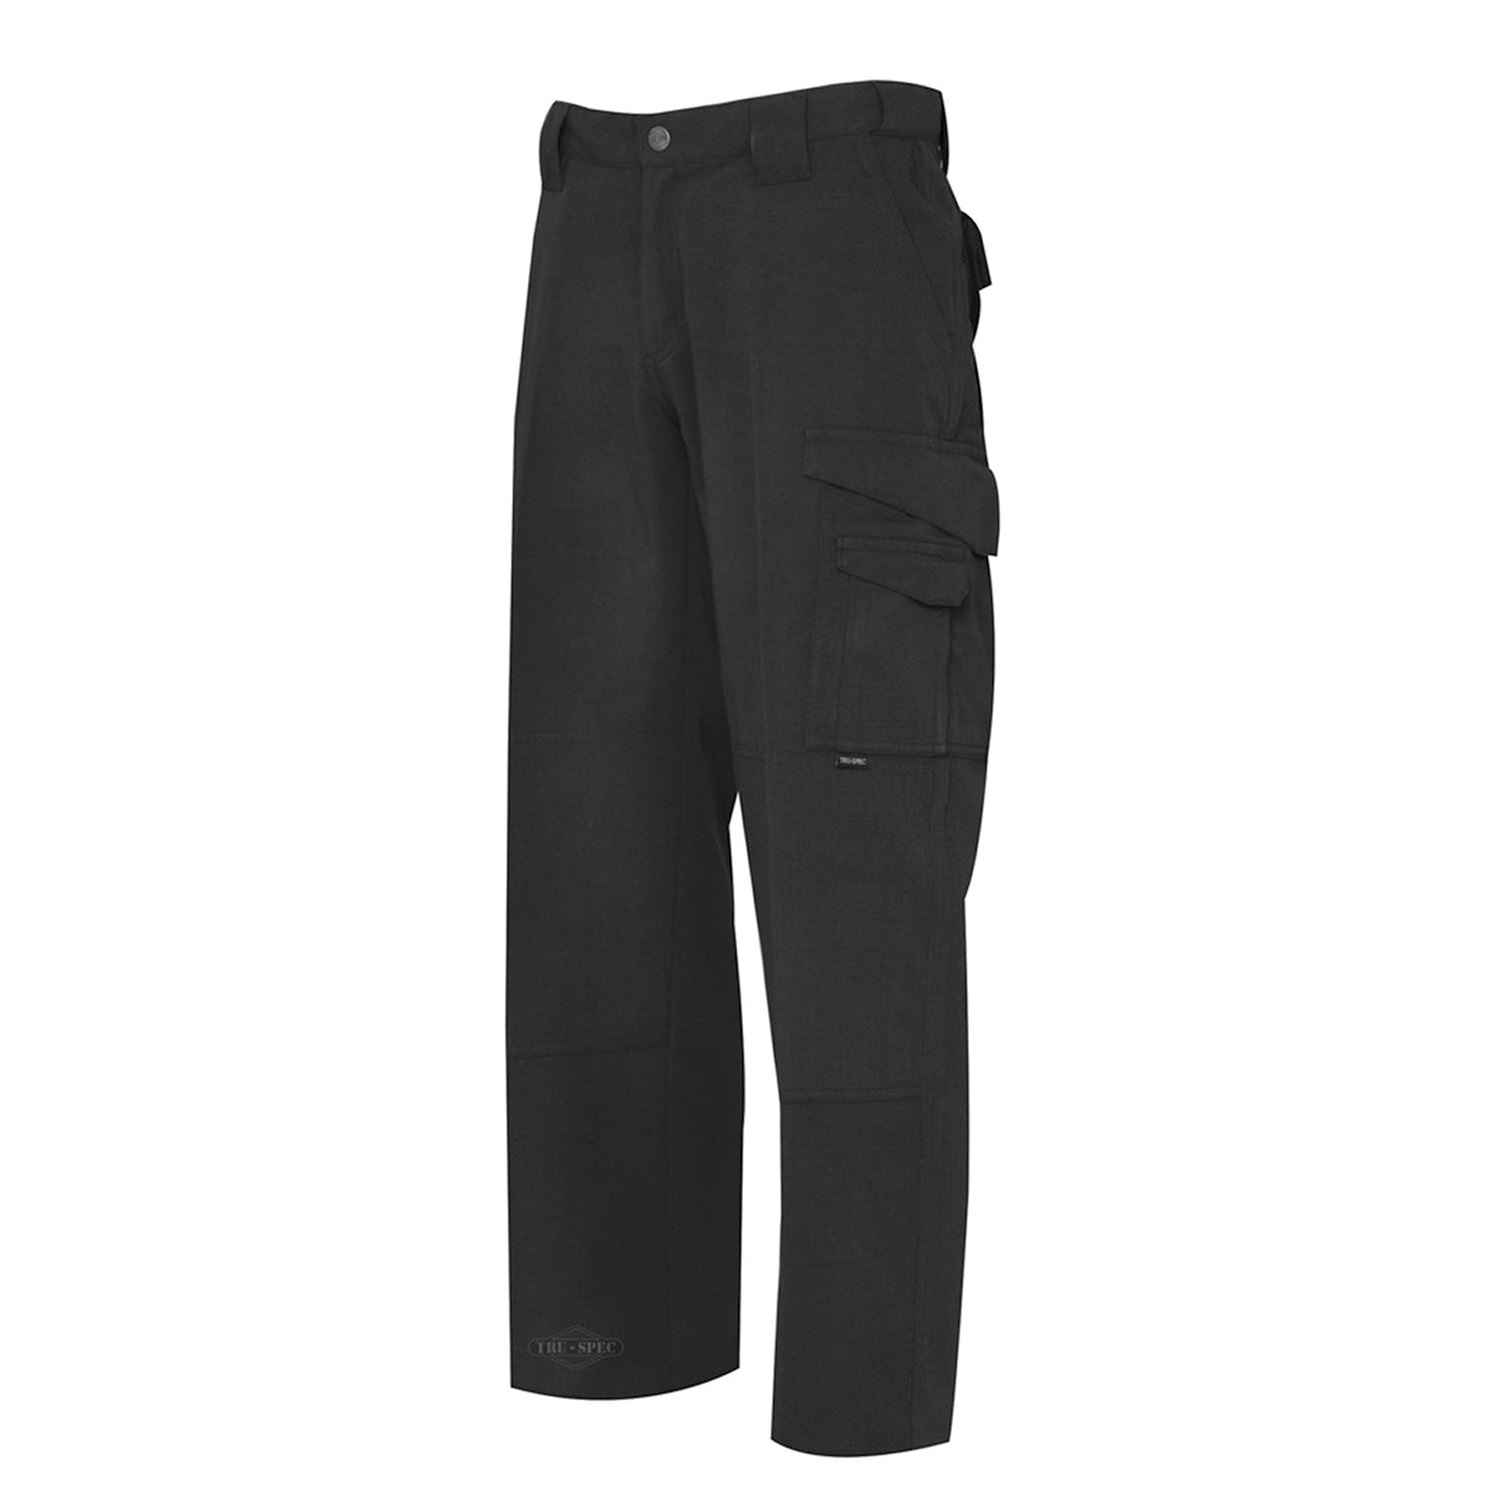 TRU-SPEC Women's 24-7 Series Original Tactical Pants